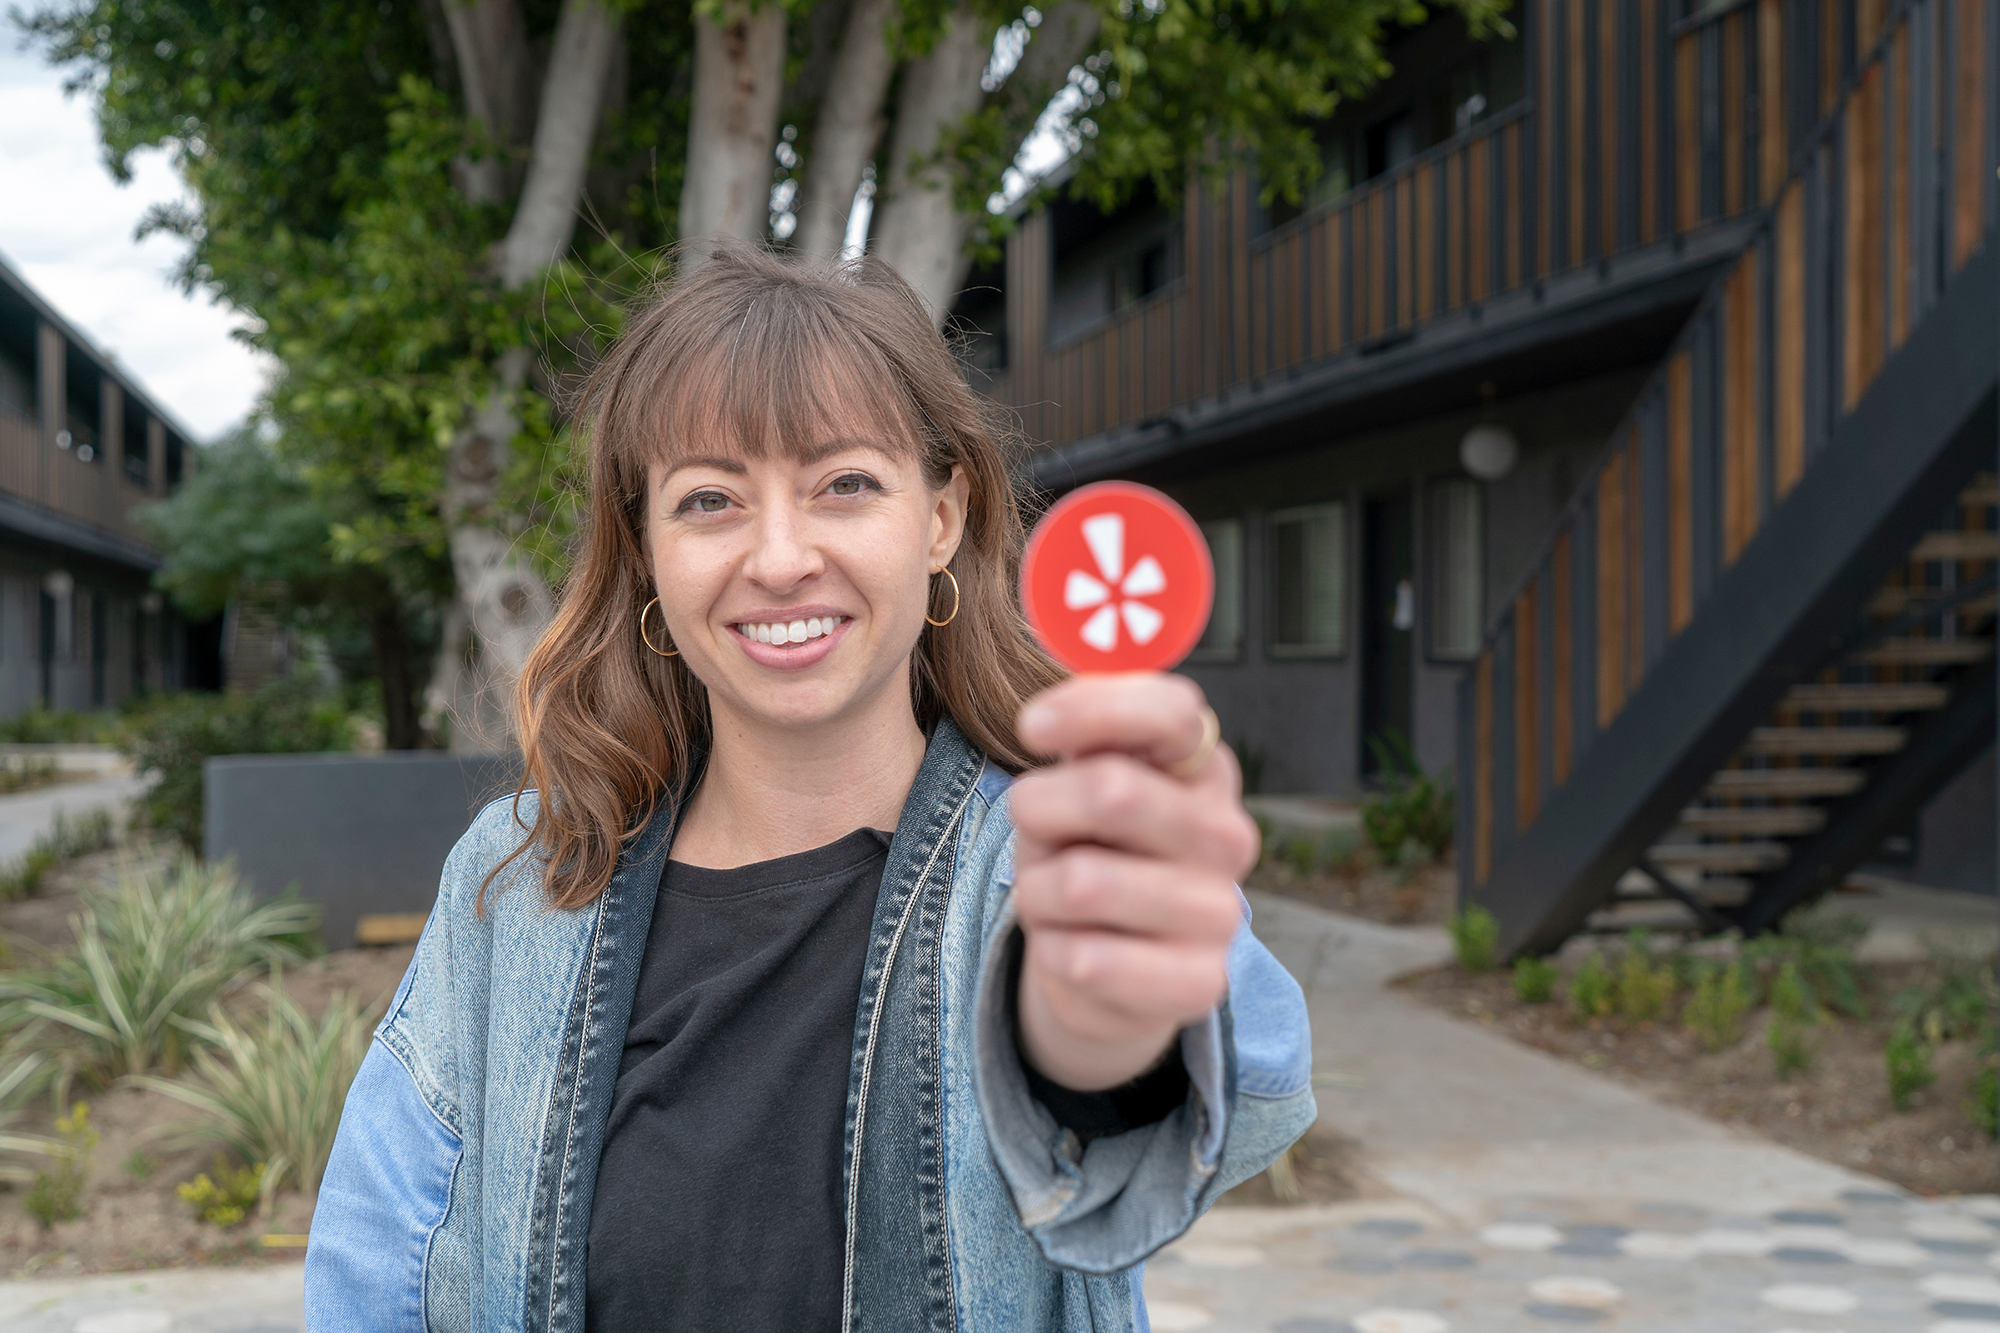 university of iowa alumna megan ranegar holds up a yelp icon